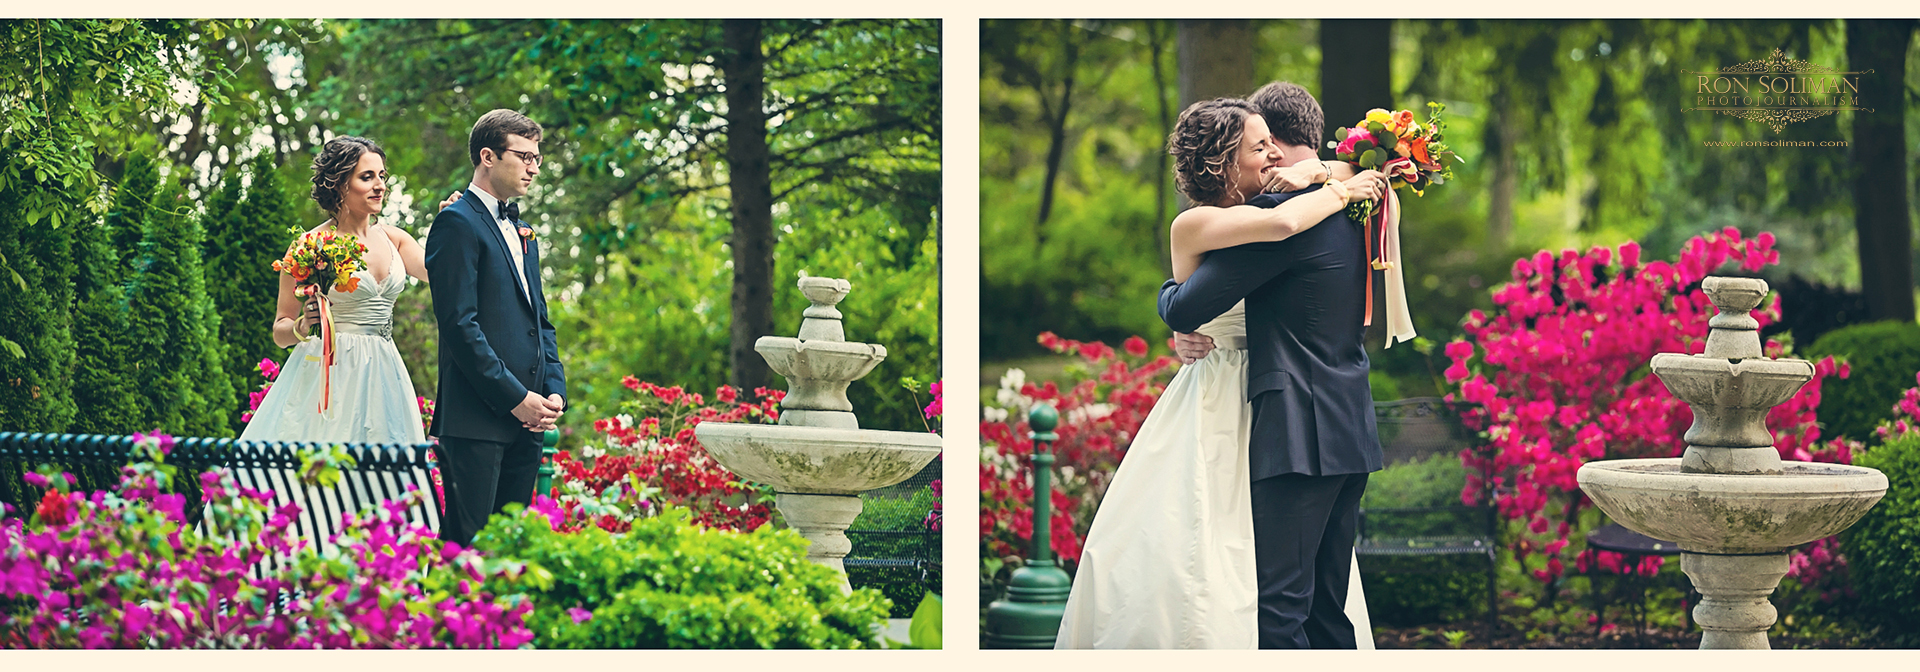 First look or first glimpse wedding